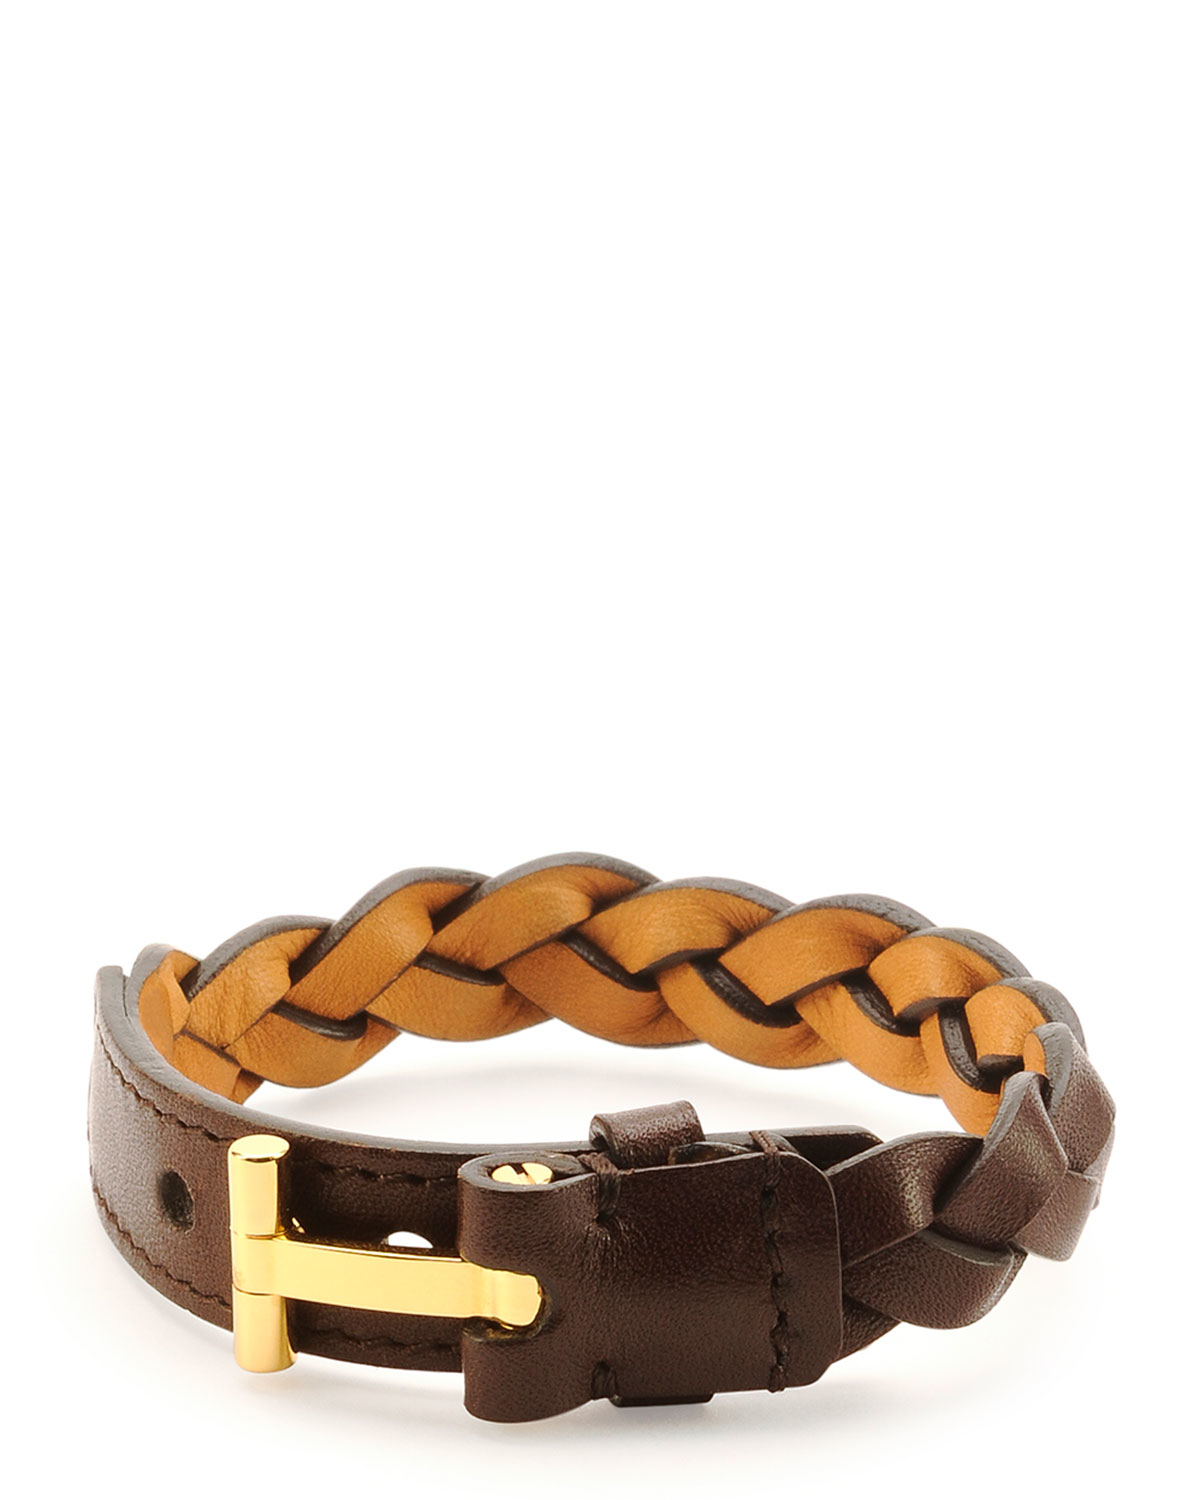 tom ford nashville s braided leather bracelet in brown